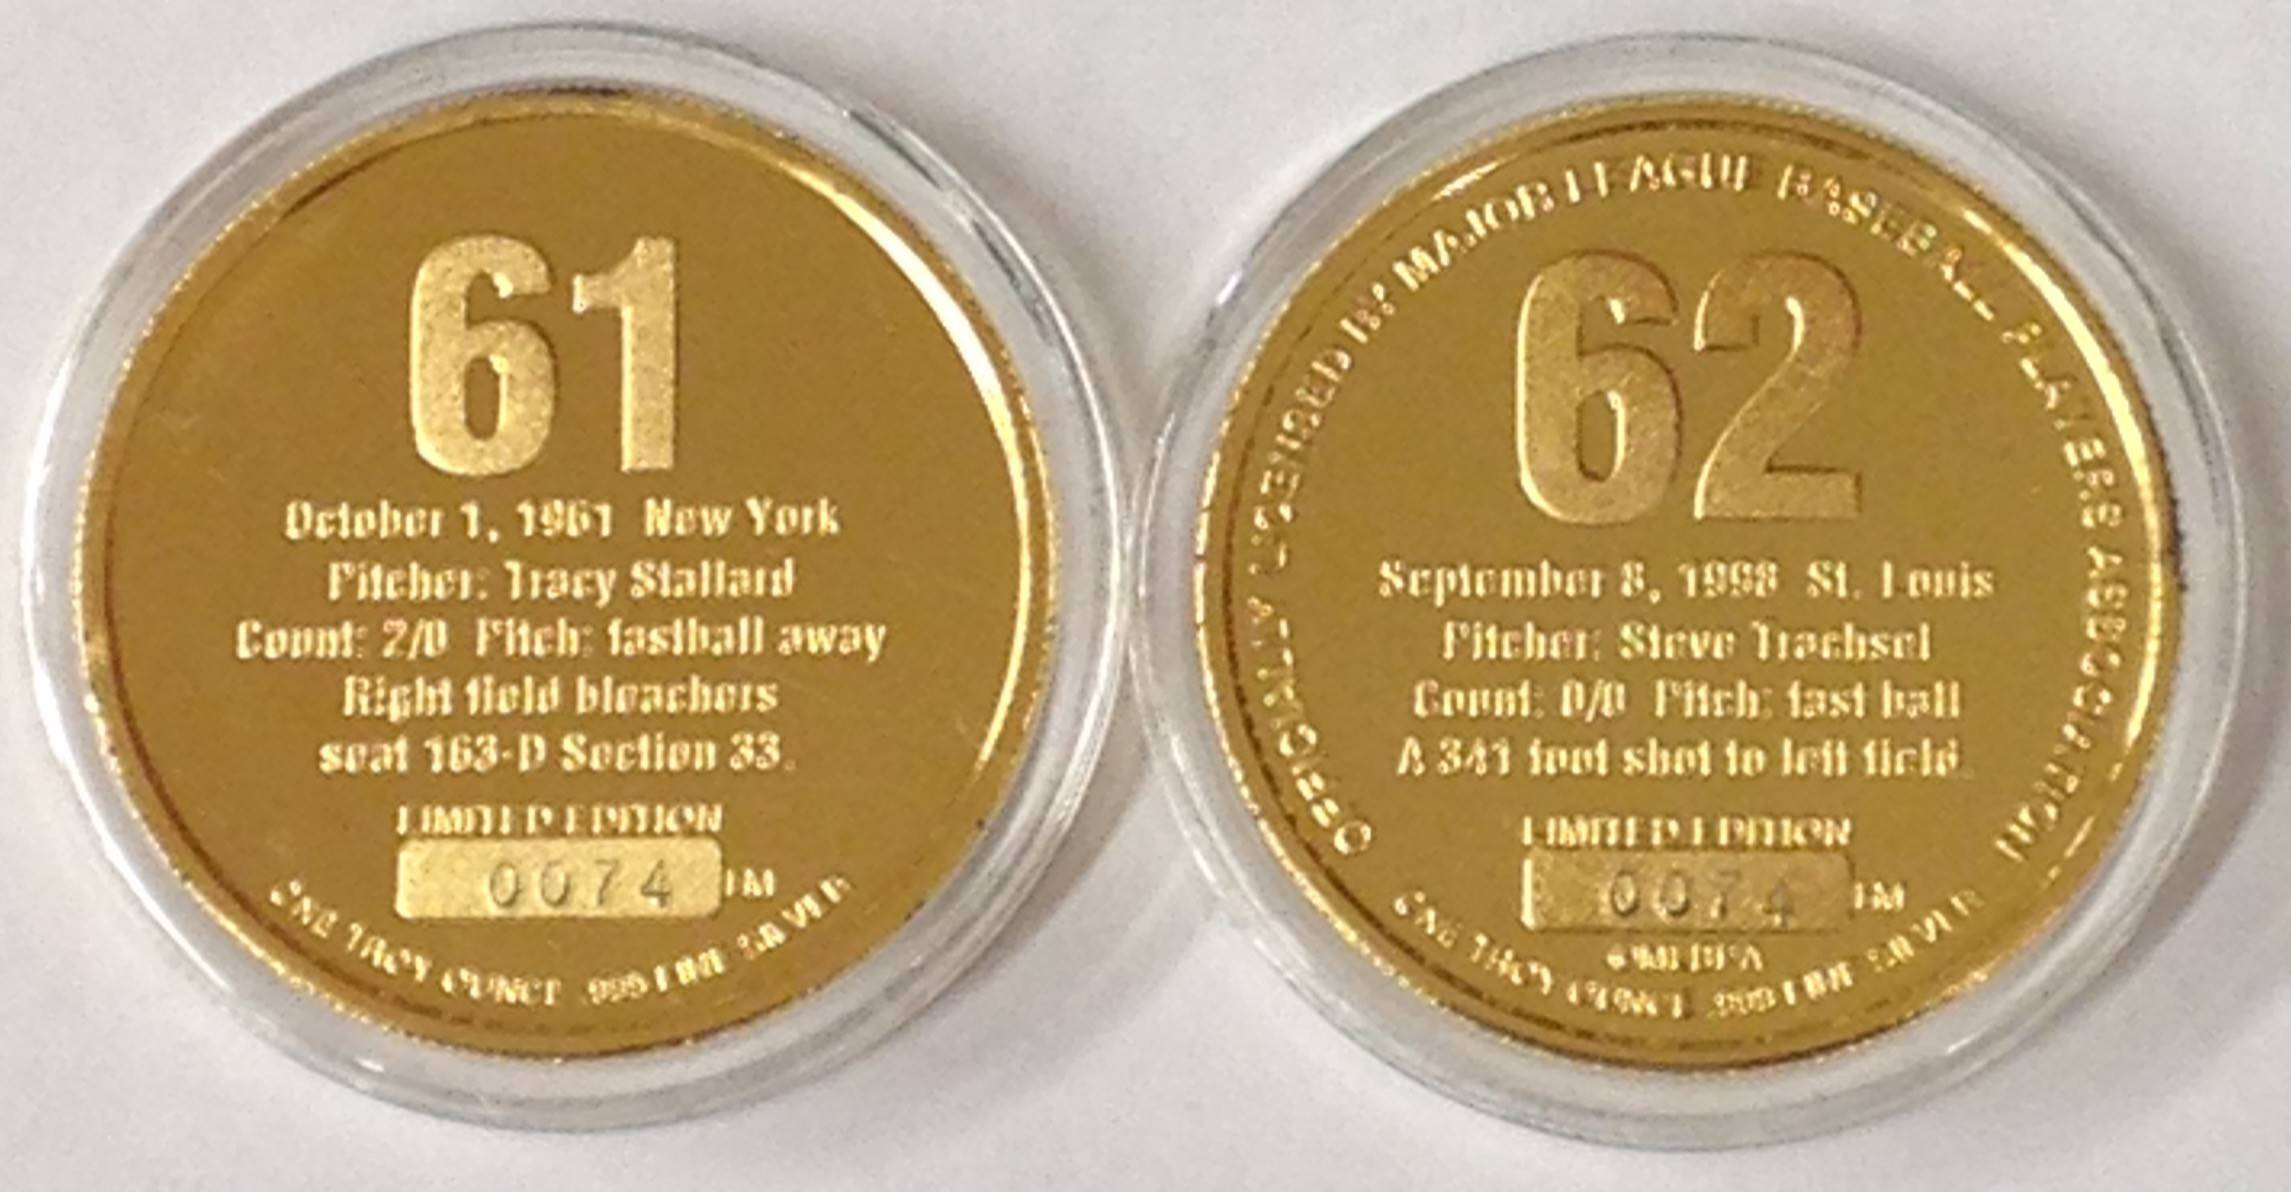 Roger Maris Amp Mark Mcgwire Highland Mint Coin Bullion